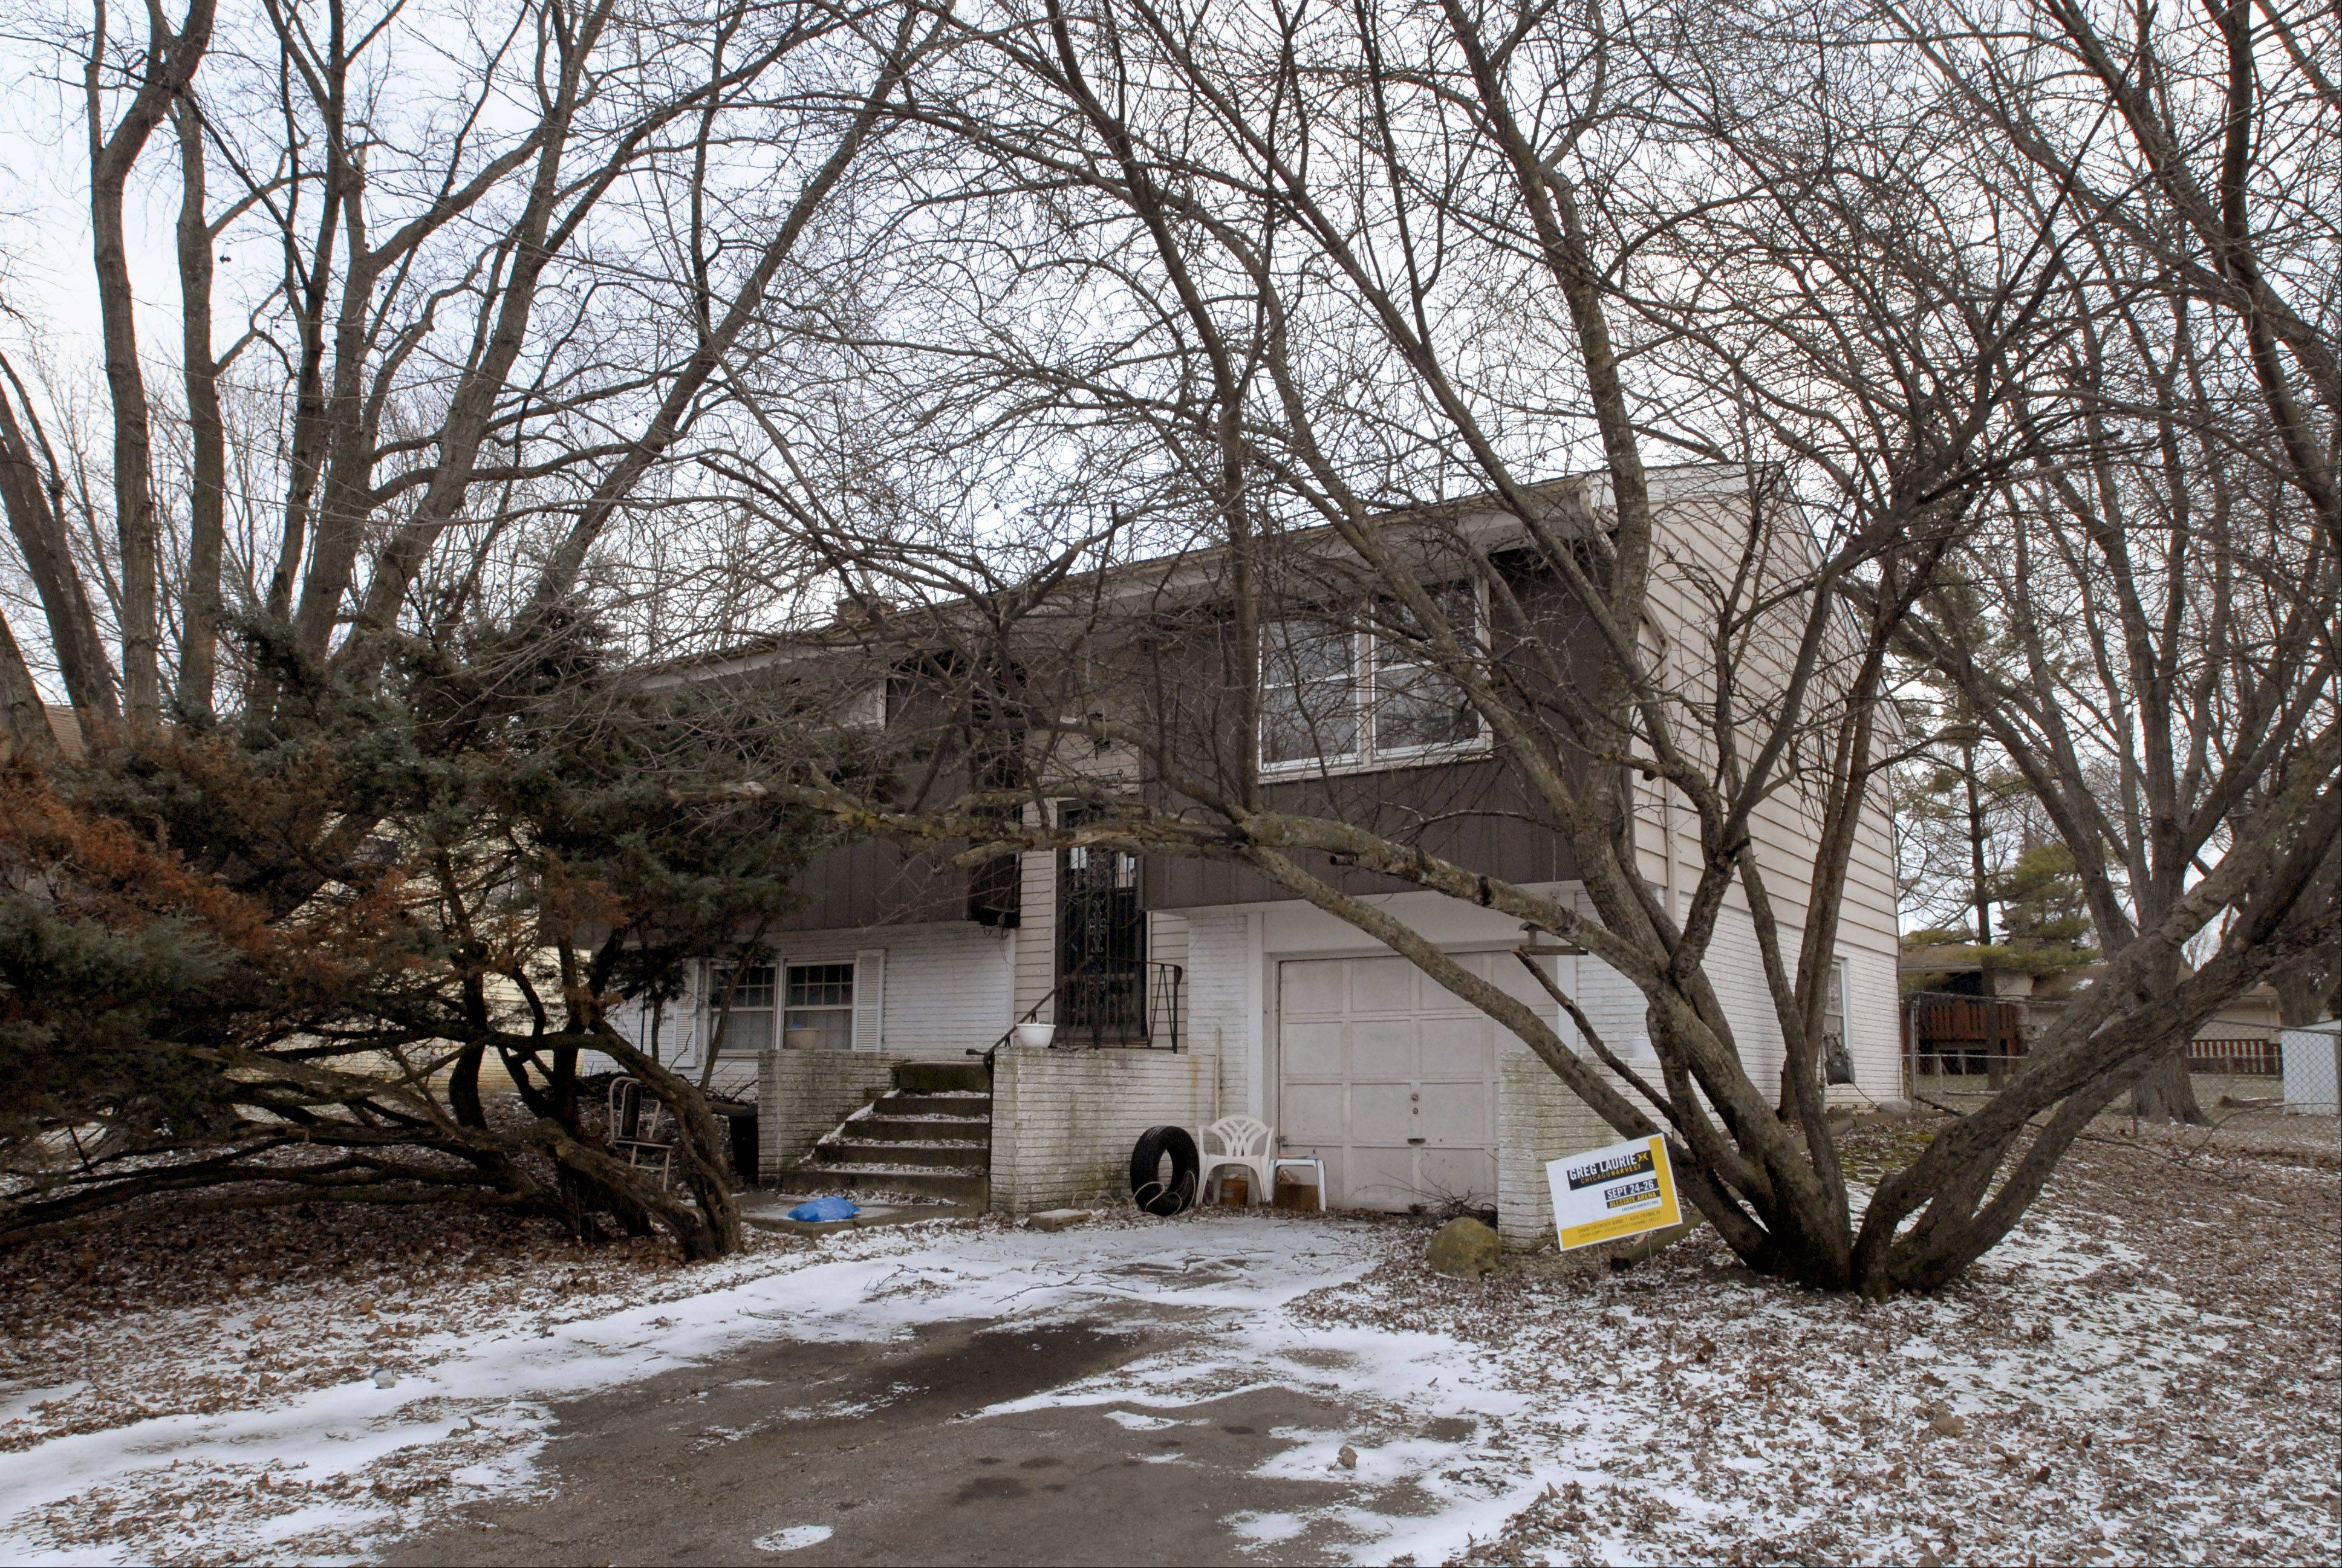 The foreclosed home of John Wuerffel on Hampton Lane in Schaumburg was sold at auction in December for $35,000 to Hoffman Estates-based Right Residential for renovation.